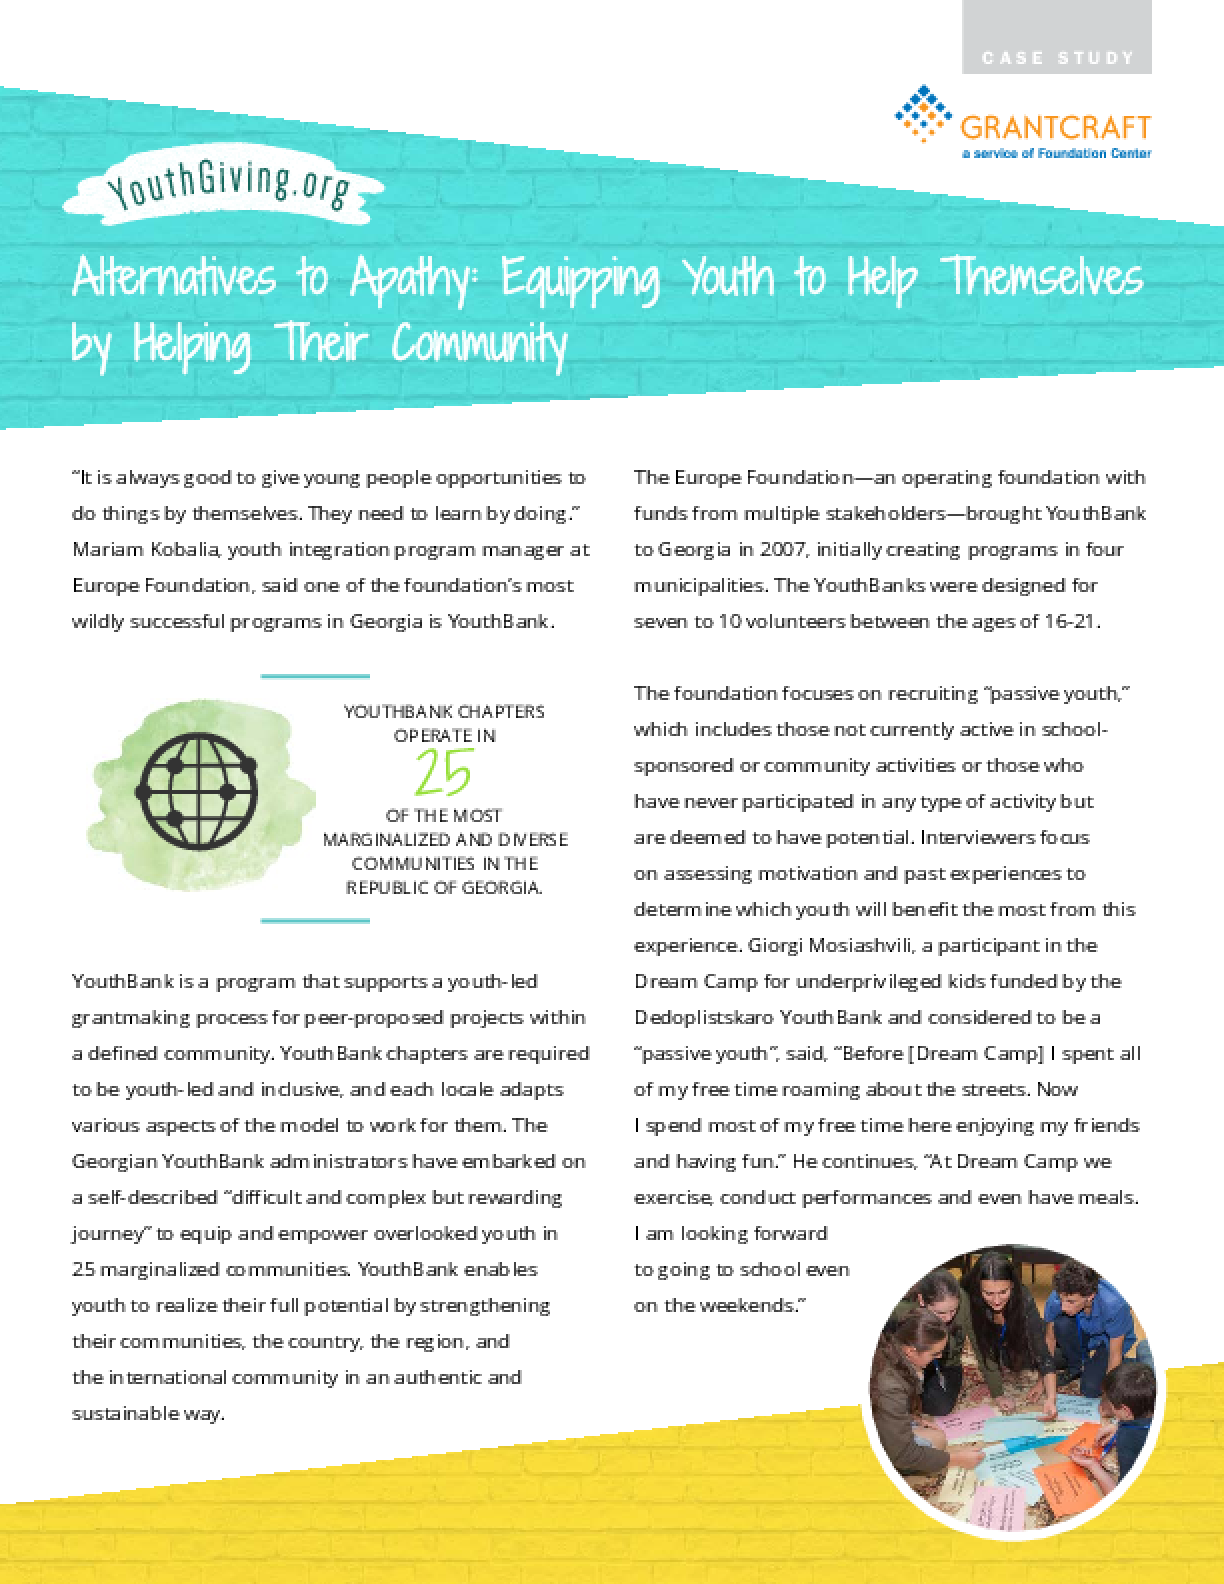 Alternatives to Apathy: Equipping Youth to Help Themselves by Helping Their Community